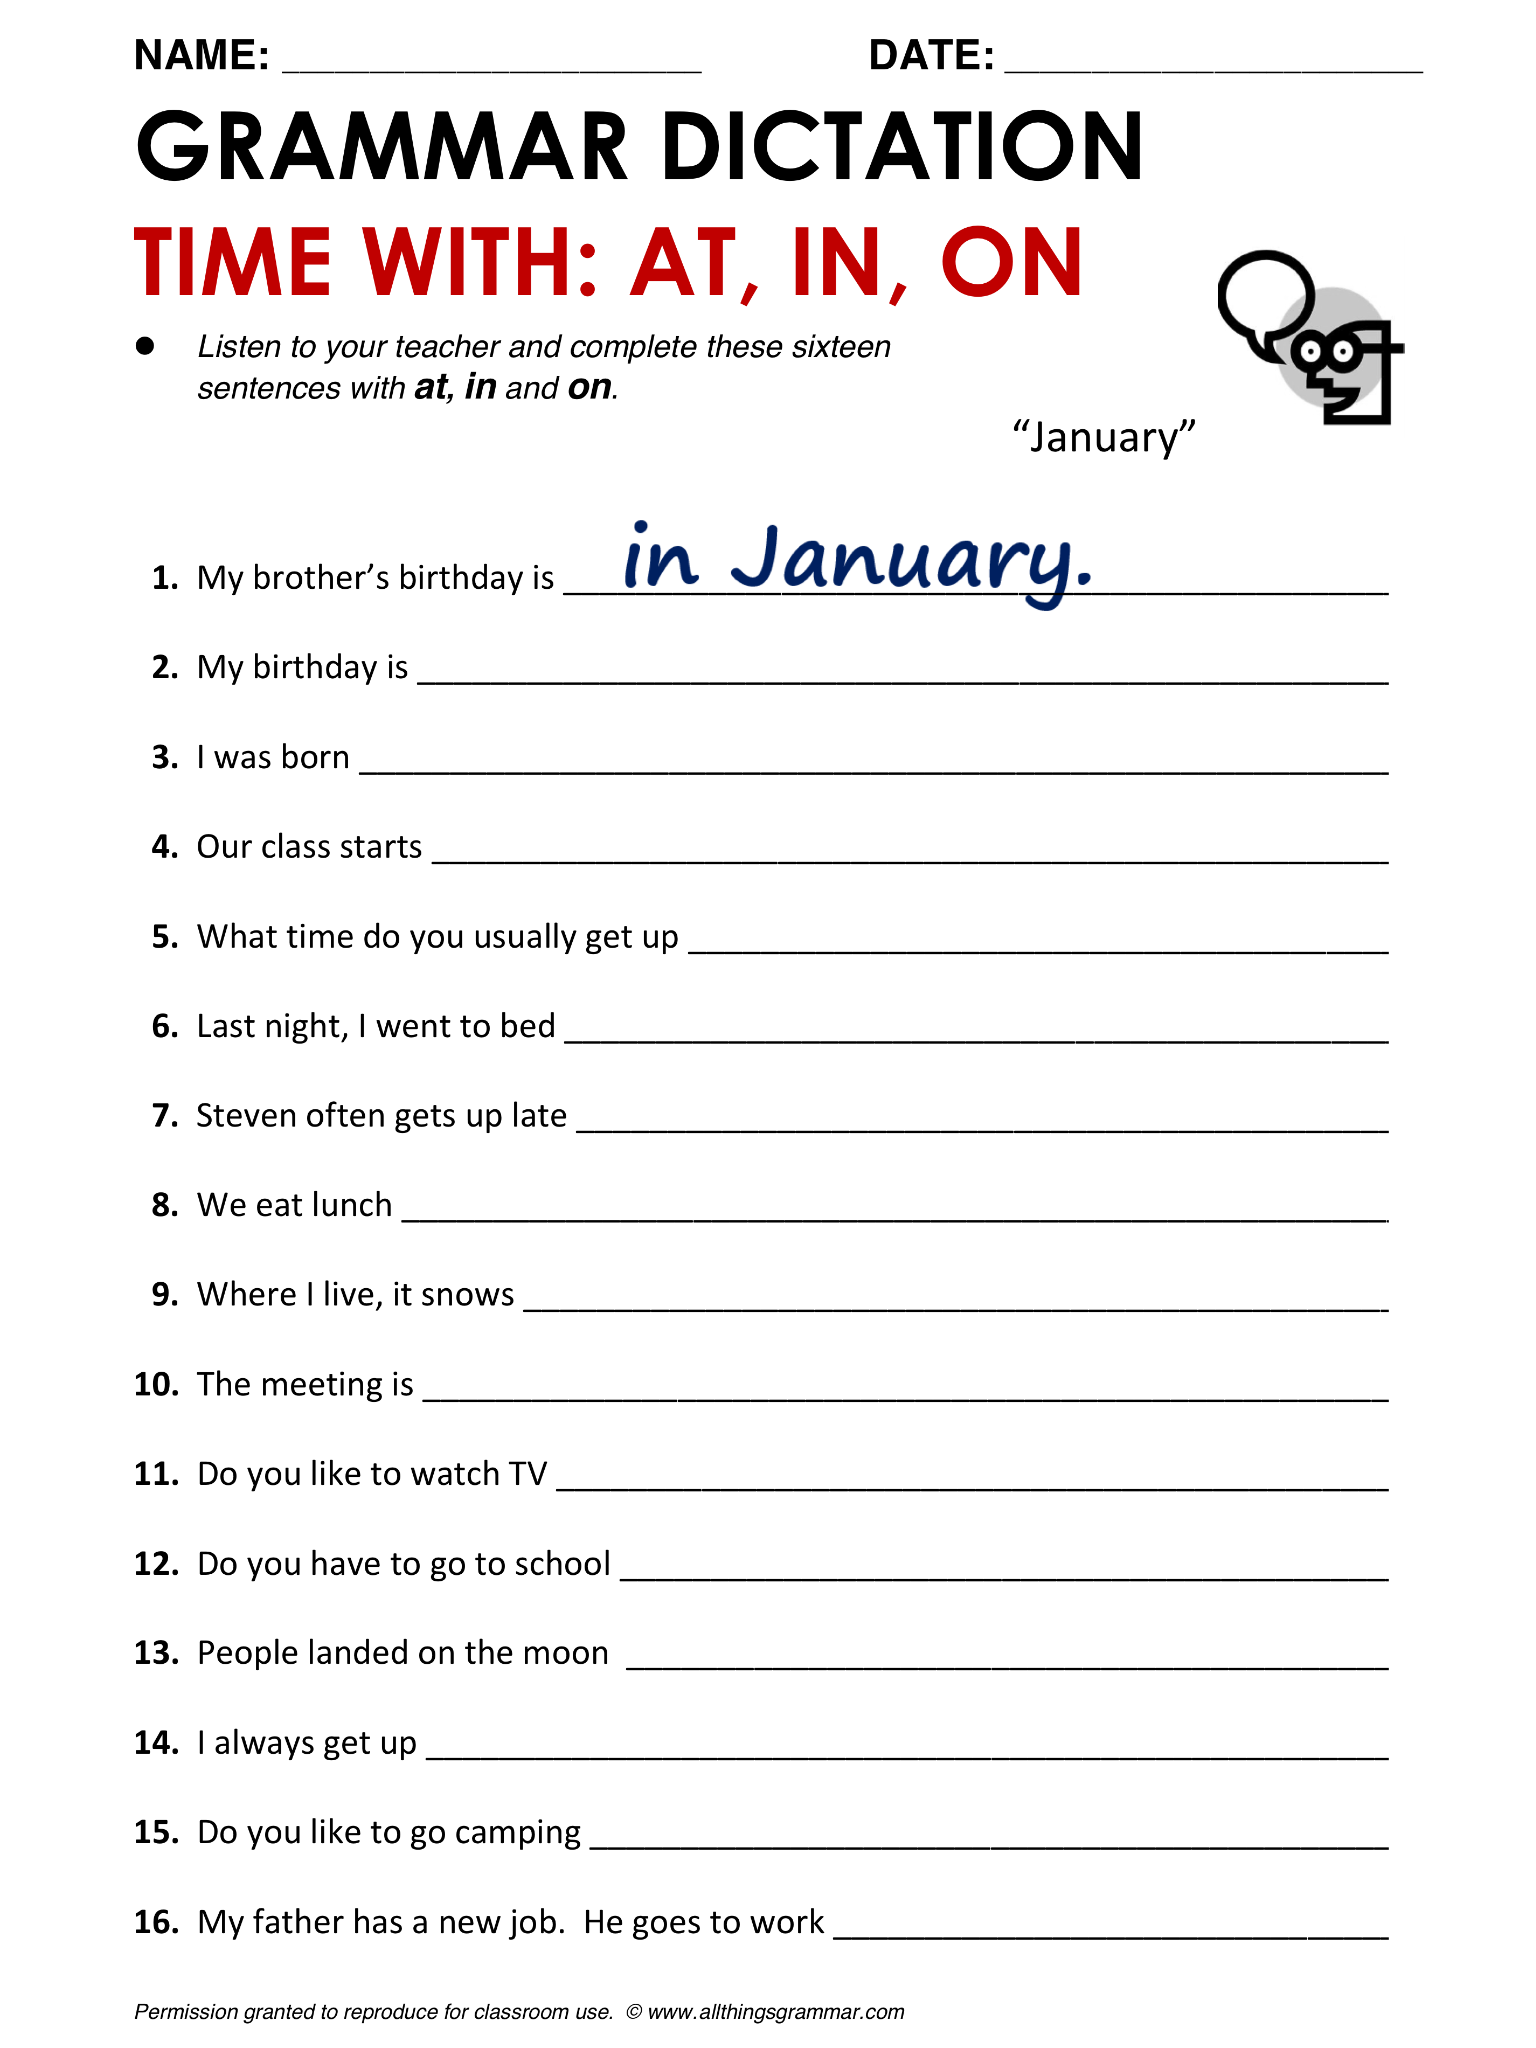 English Grammar Prepositions of Time at in on – Prepositions of Time Worksheet